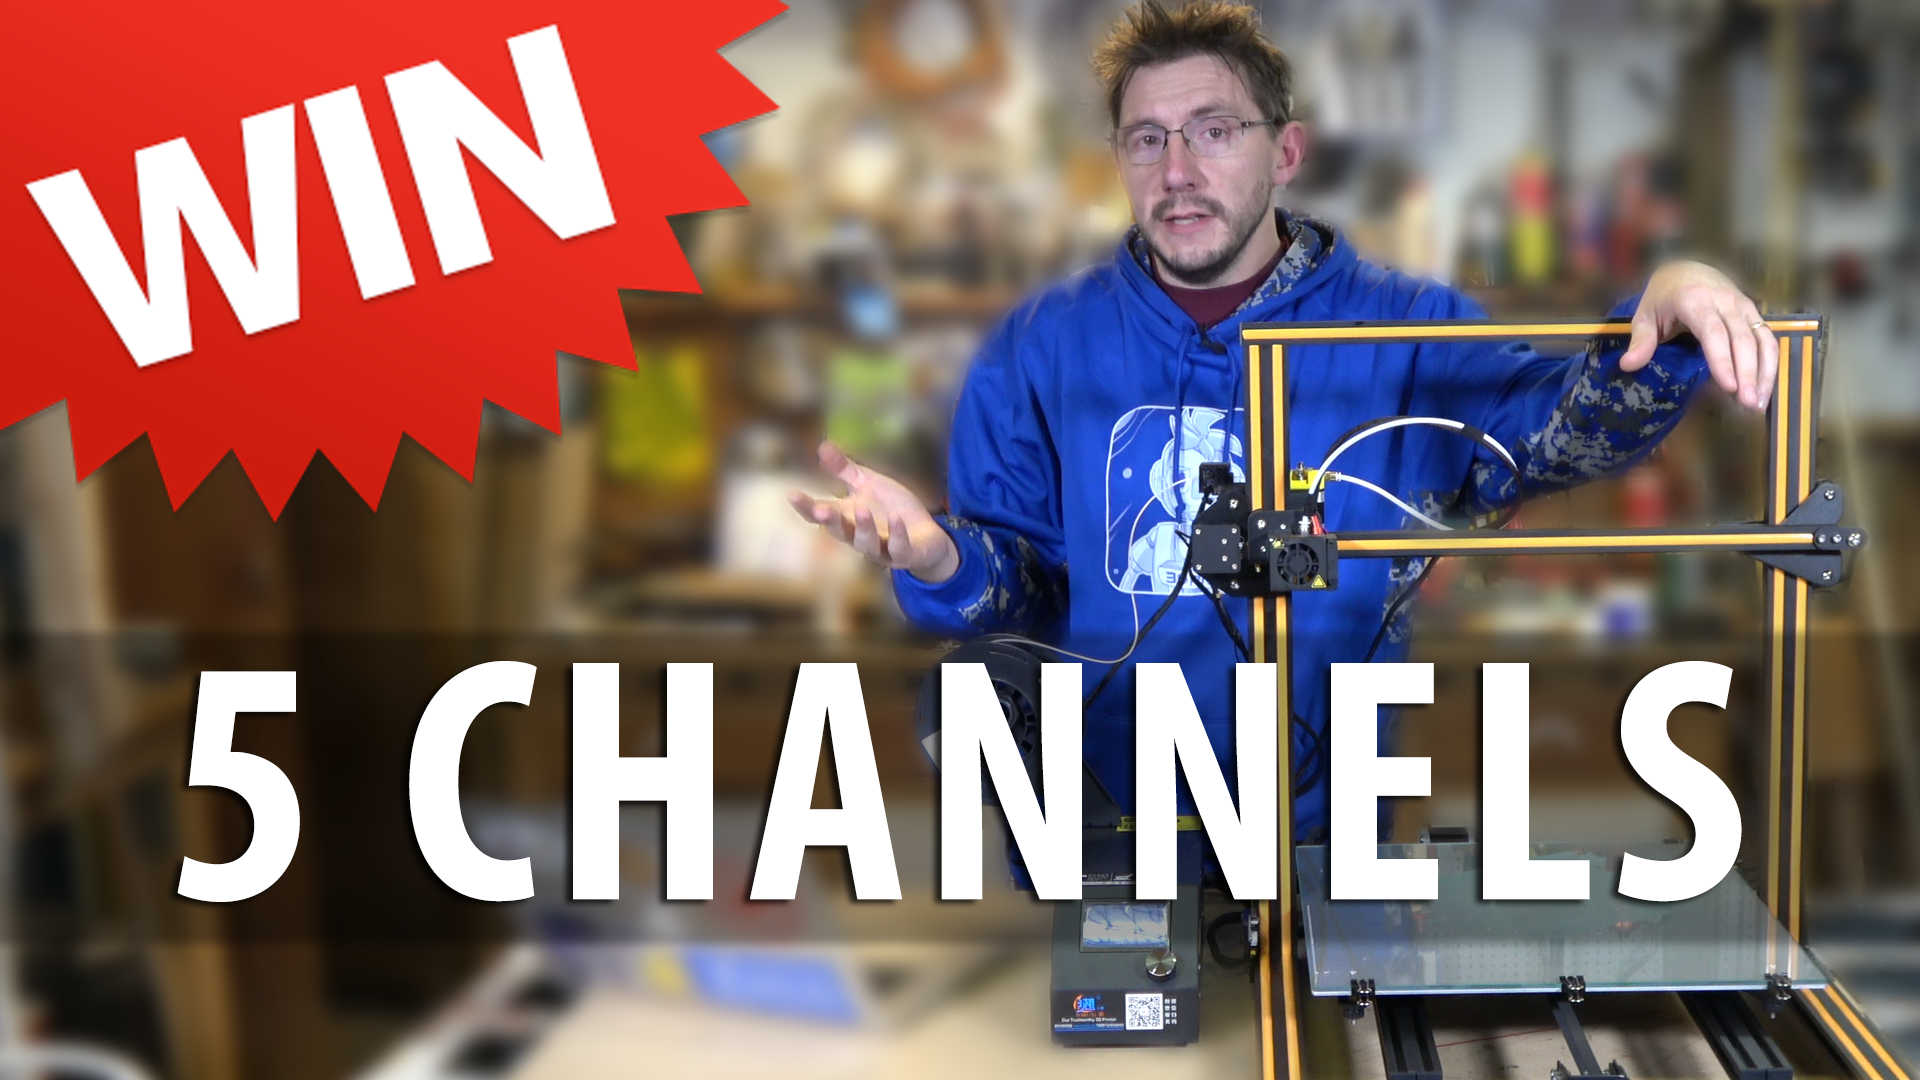 5 YouTube Channels to Watch / Win a 3D Printer